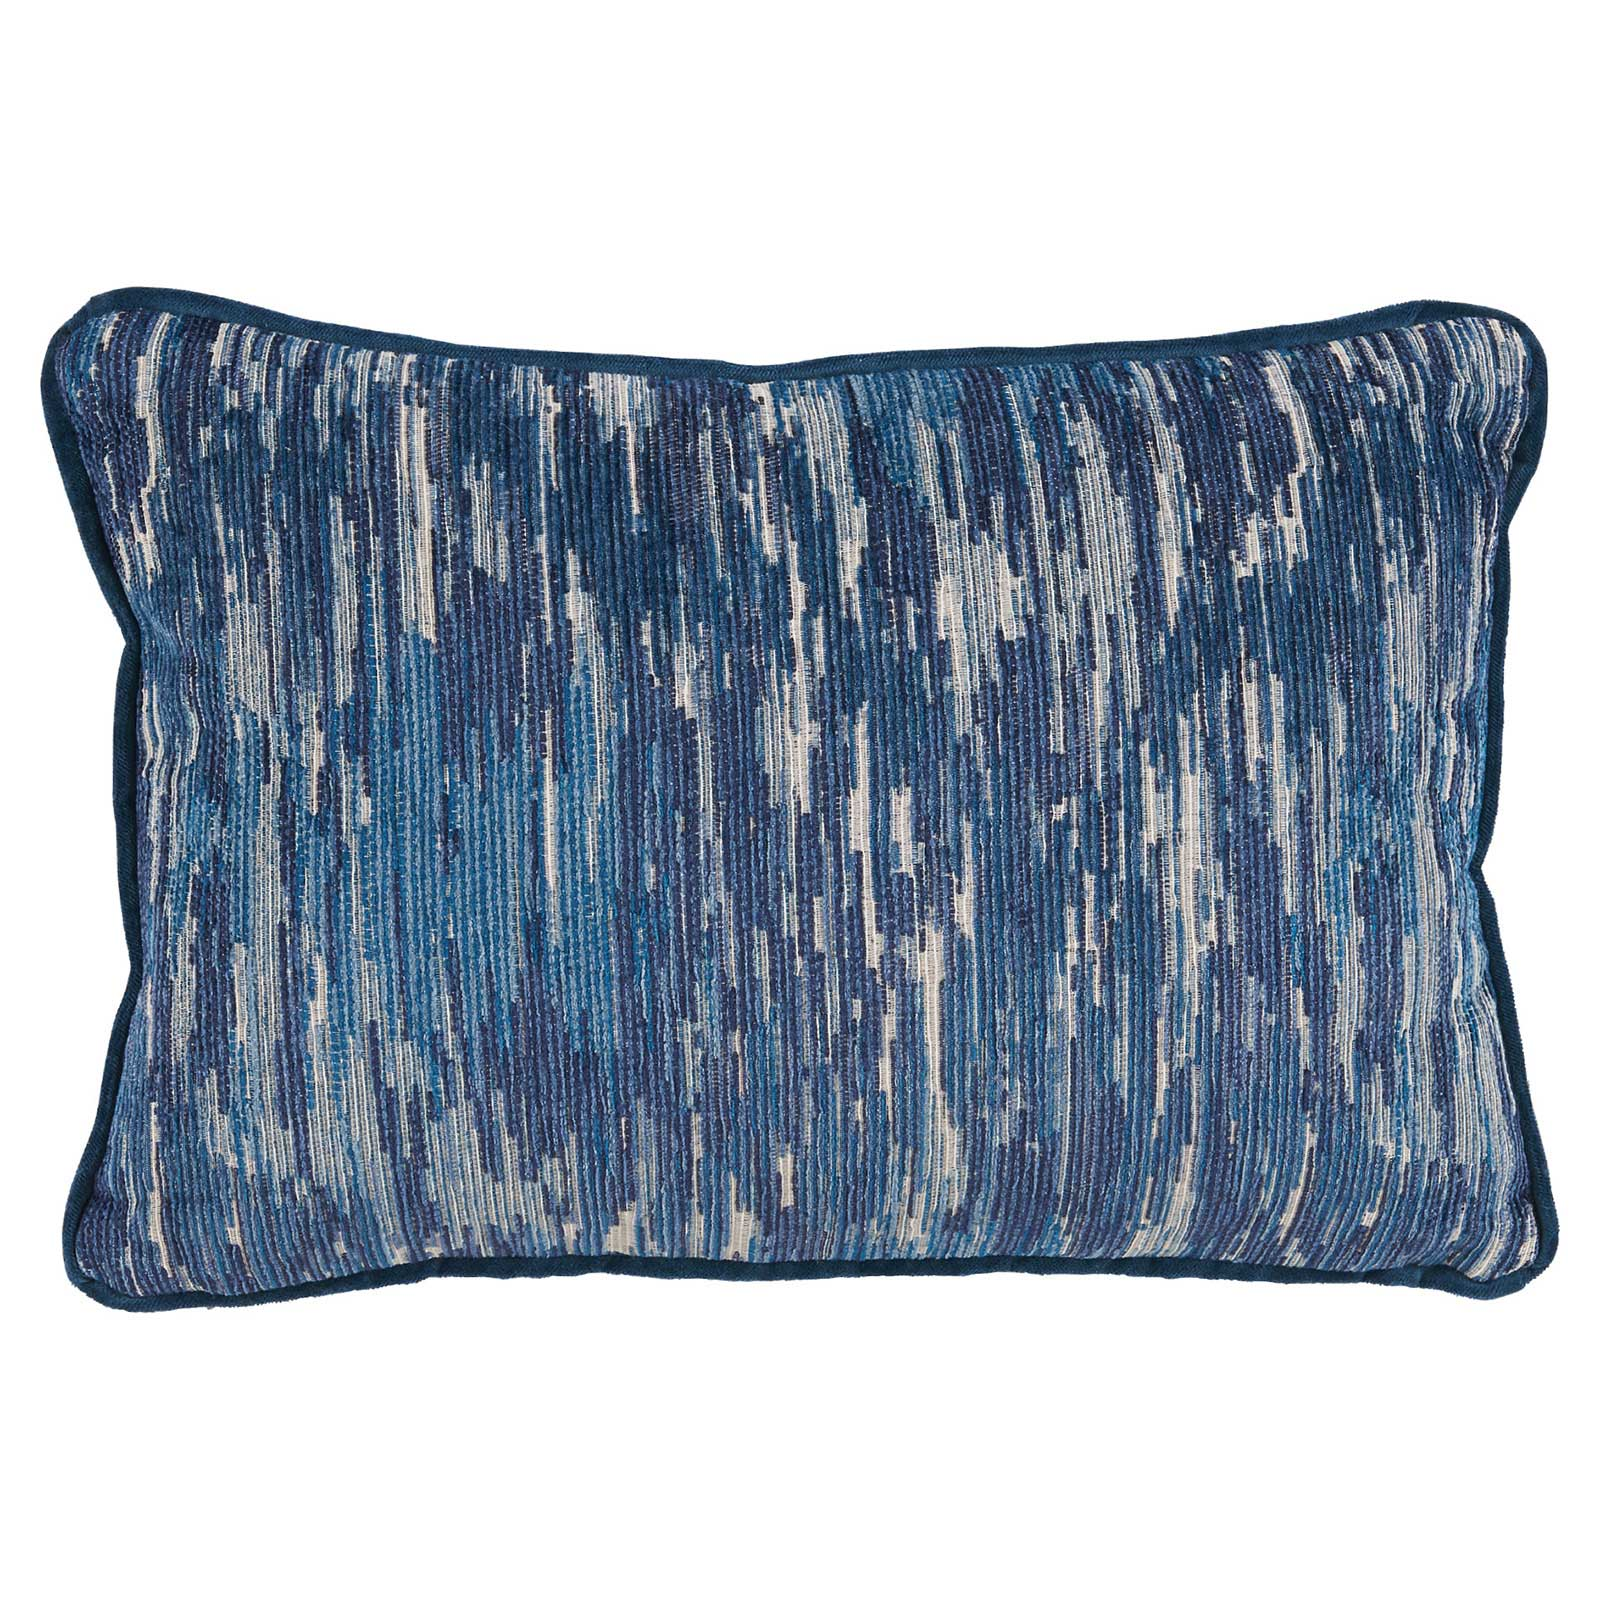 Oz Modern Classic Indigo Blue Linear Pillow - 13x19